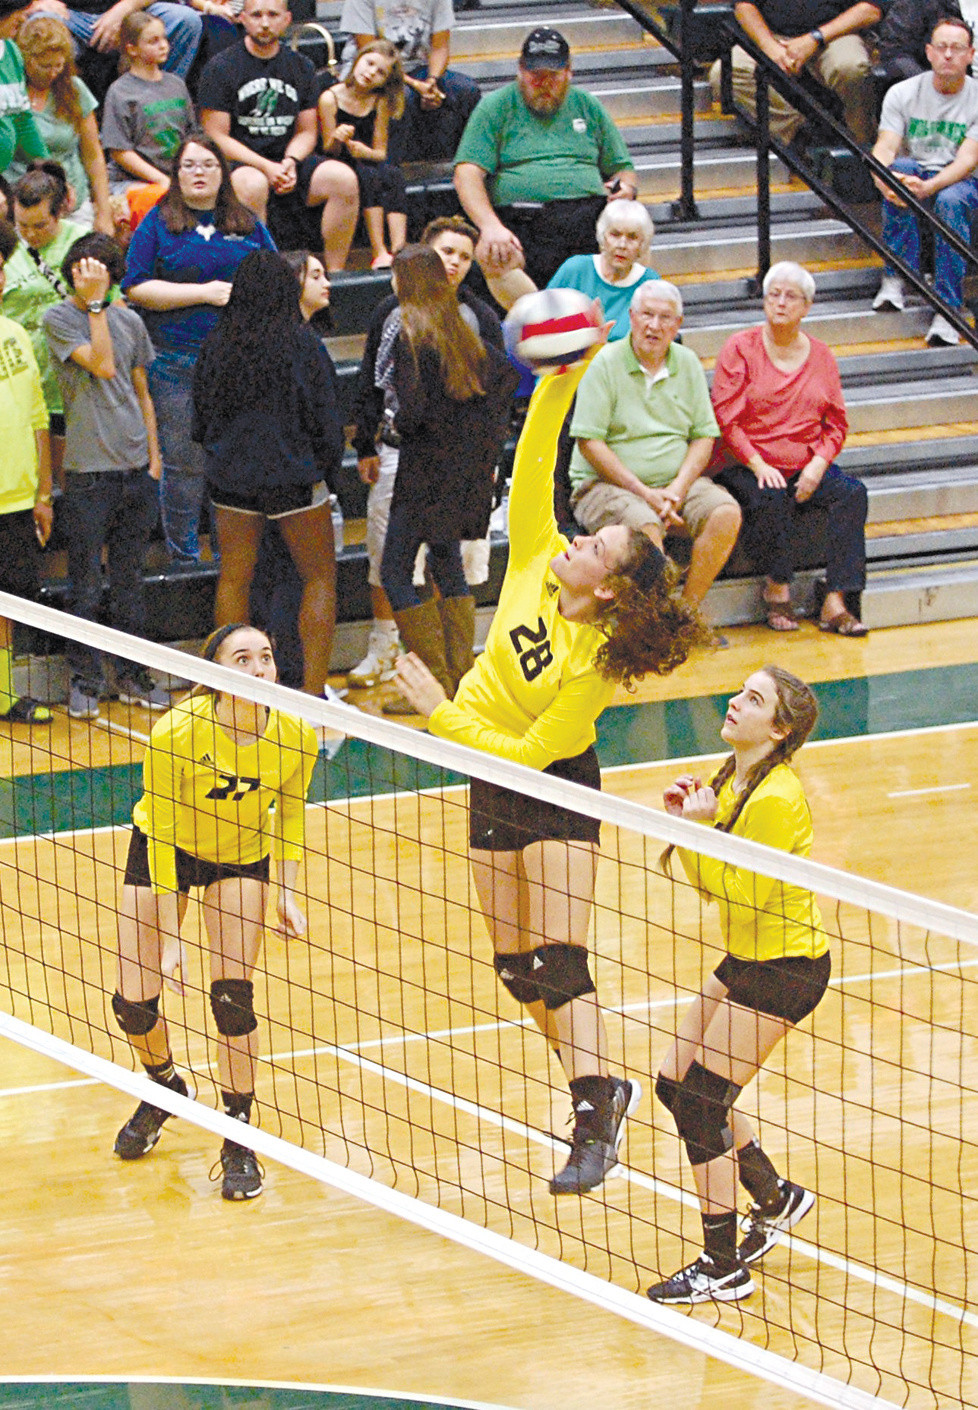 CALEIGH EVANS goes for a kill during the 41st District championship match between Woodford County High School and Western Hills on Wednesday, Oct. 19, at Western Hills. While the Lady Jackets lost 3-1, Evans was named to the All-41st District team for her efforts. (Photo by Rick Capone)